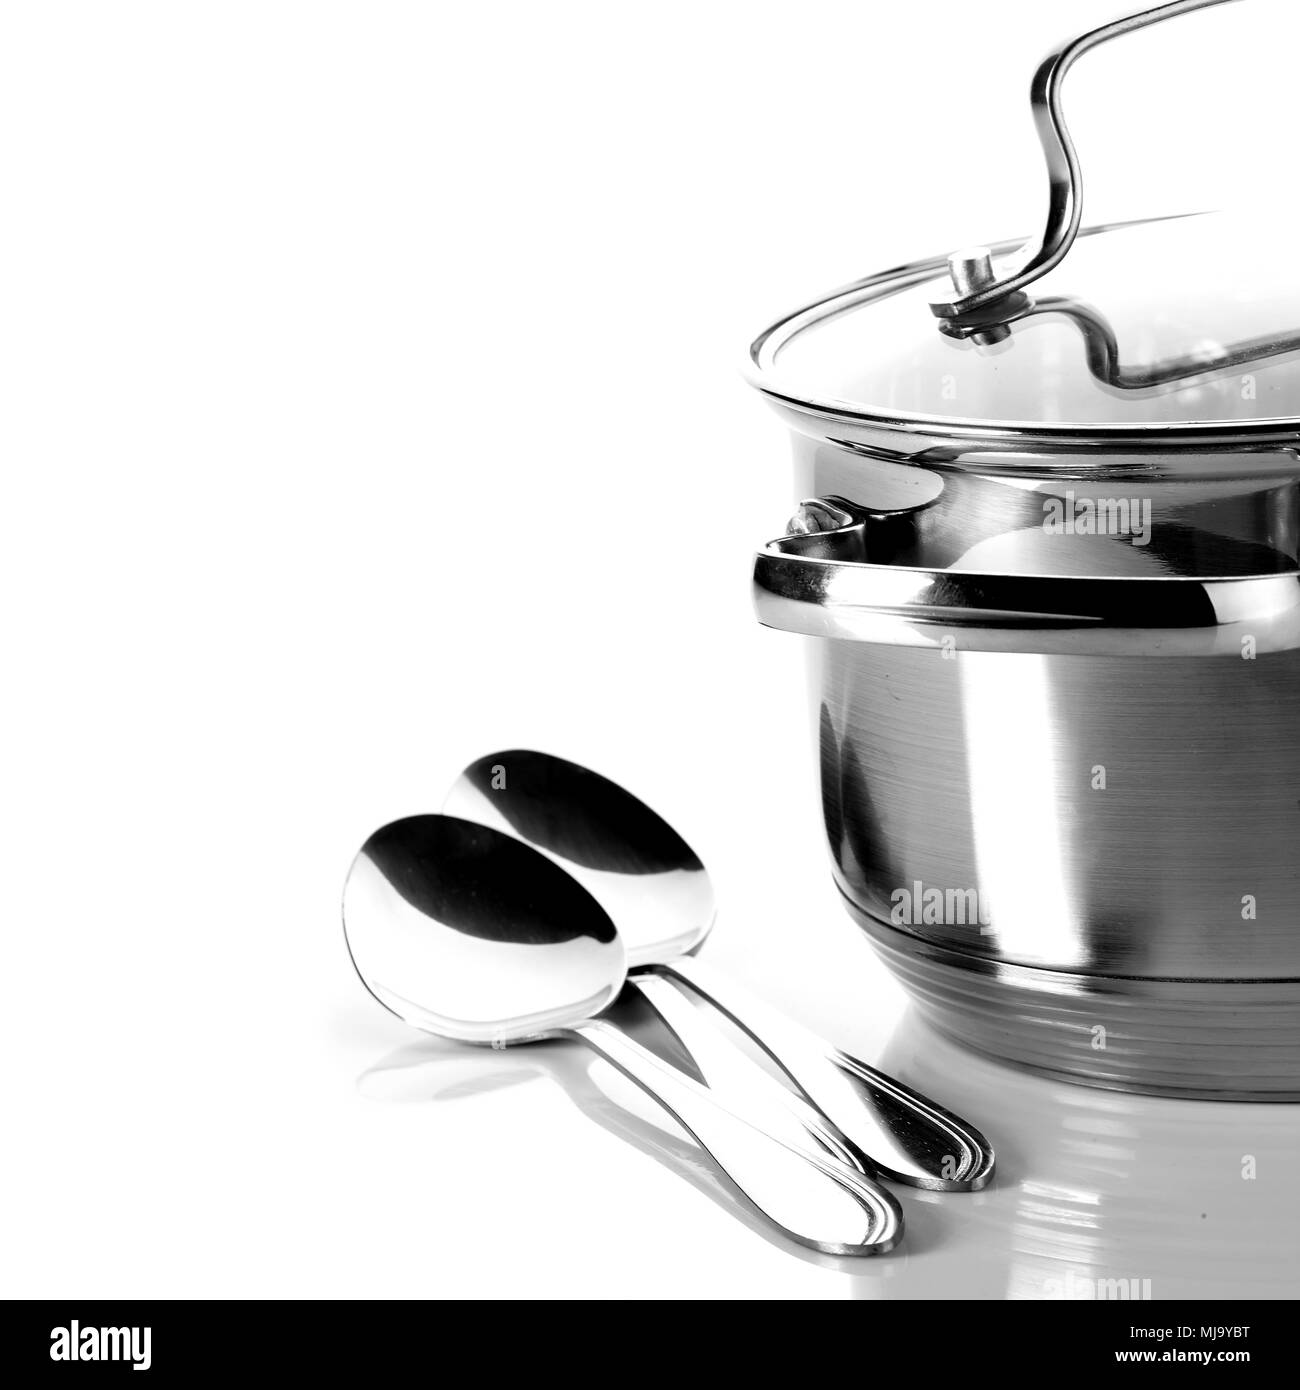 Pan and spoons. Kitchen utensils. Ware. - Stock Image